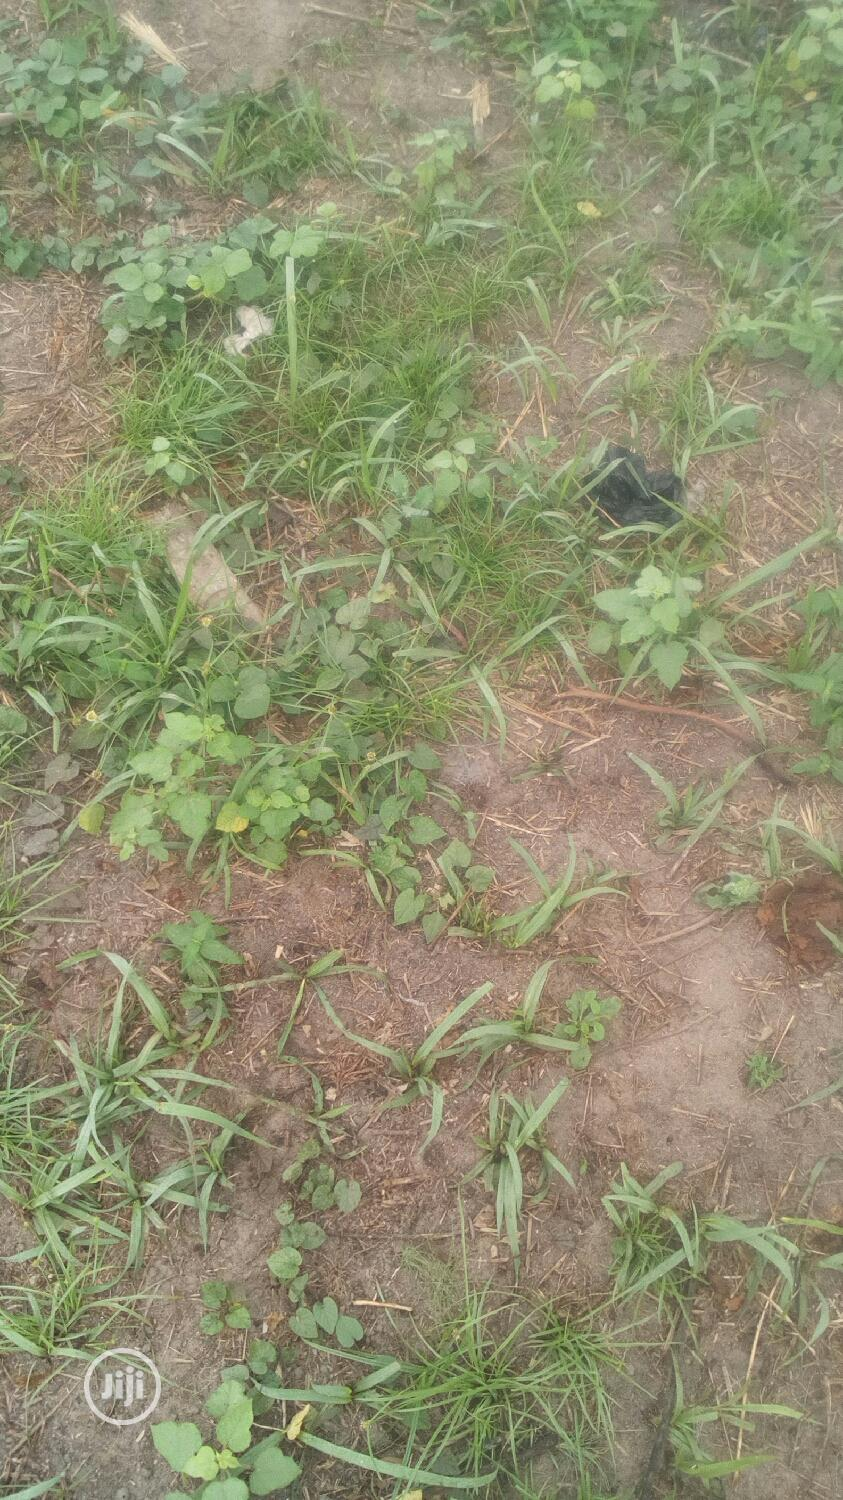 Buy Dry Land At Muwo Badagry Plot Of Land For Sale 600sqm | Land & Plots for Rent for sale in Maryland, Lagos State, Nigeria